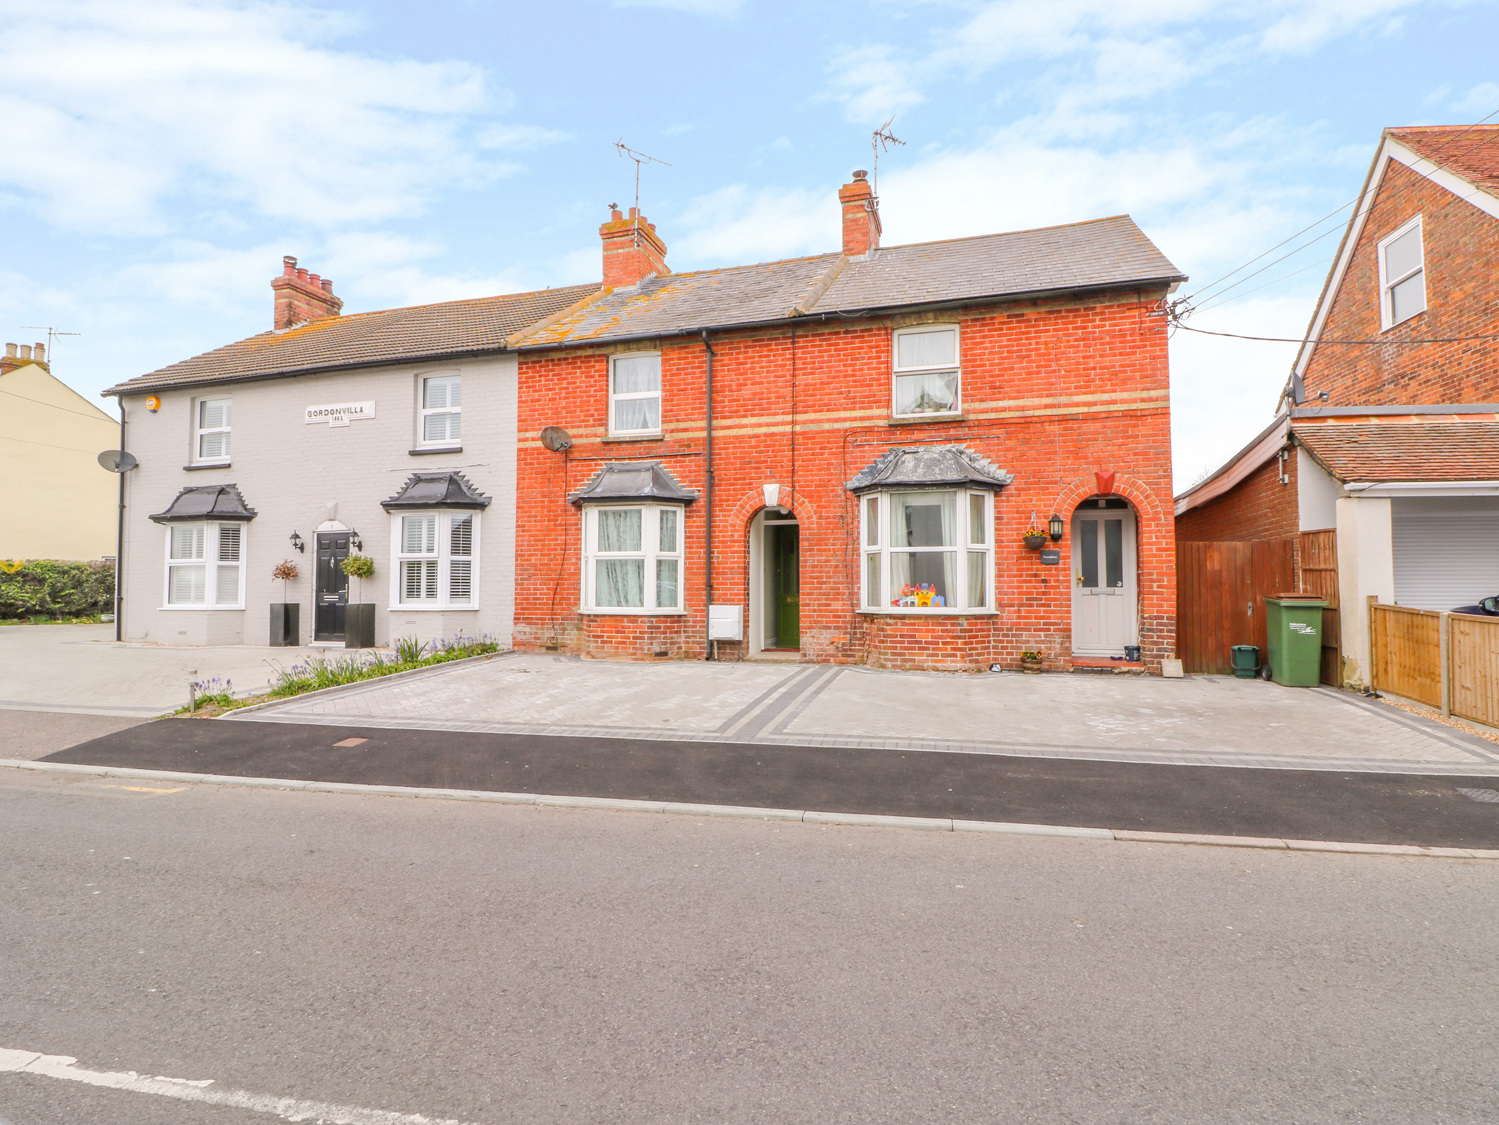 2 bedroom Cottage for rent in New Romney